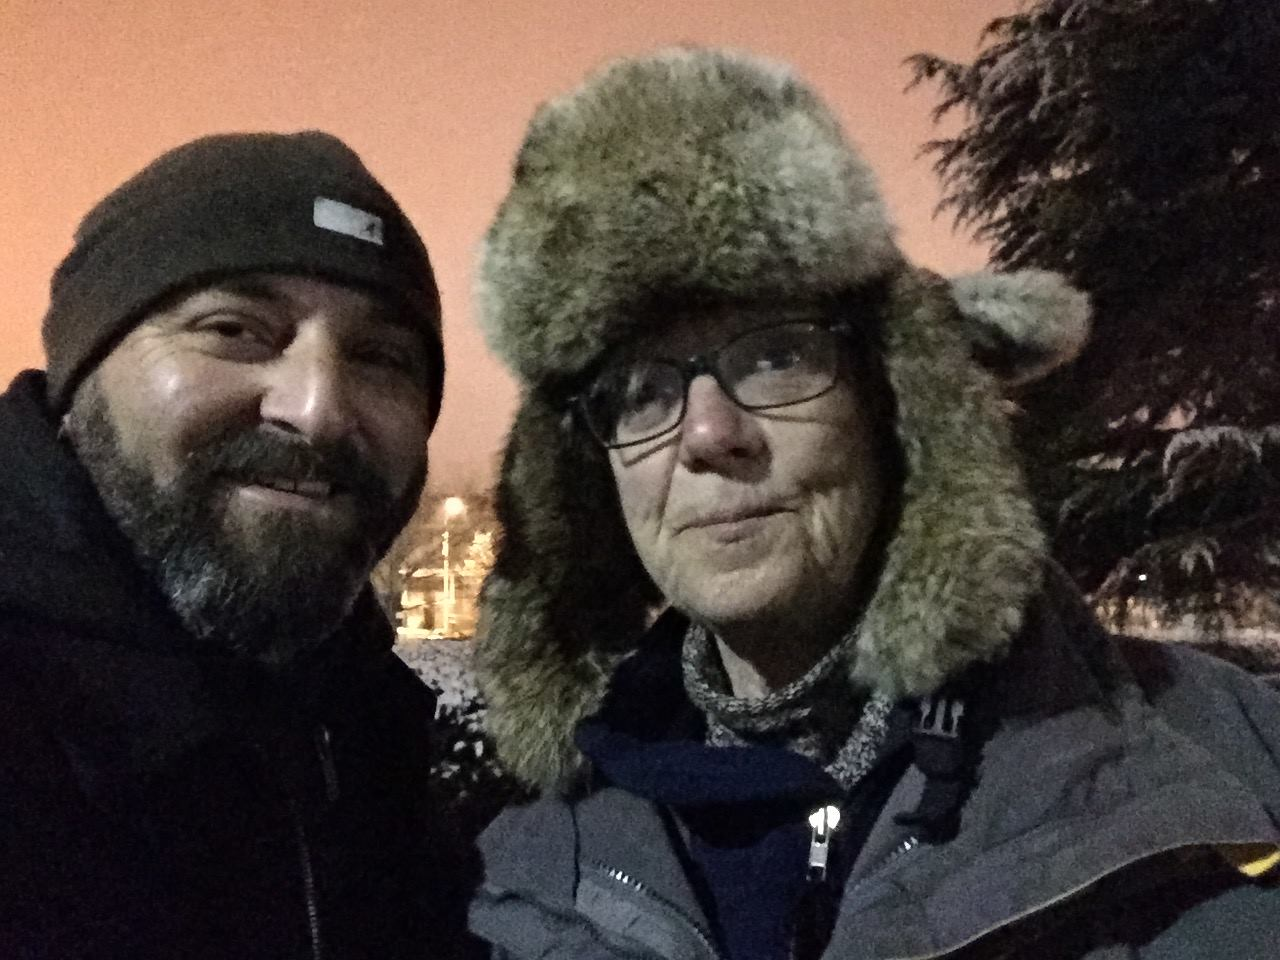 Carol Herwig poses for an obligatory selfie with Drew. (Carol is one of my favorite neighbors to pull into selfie photos -- check out that hat!)  January 21, 2015